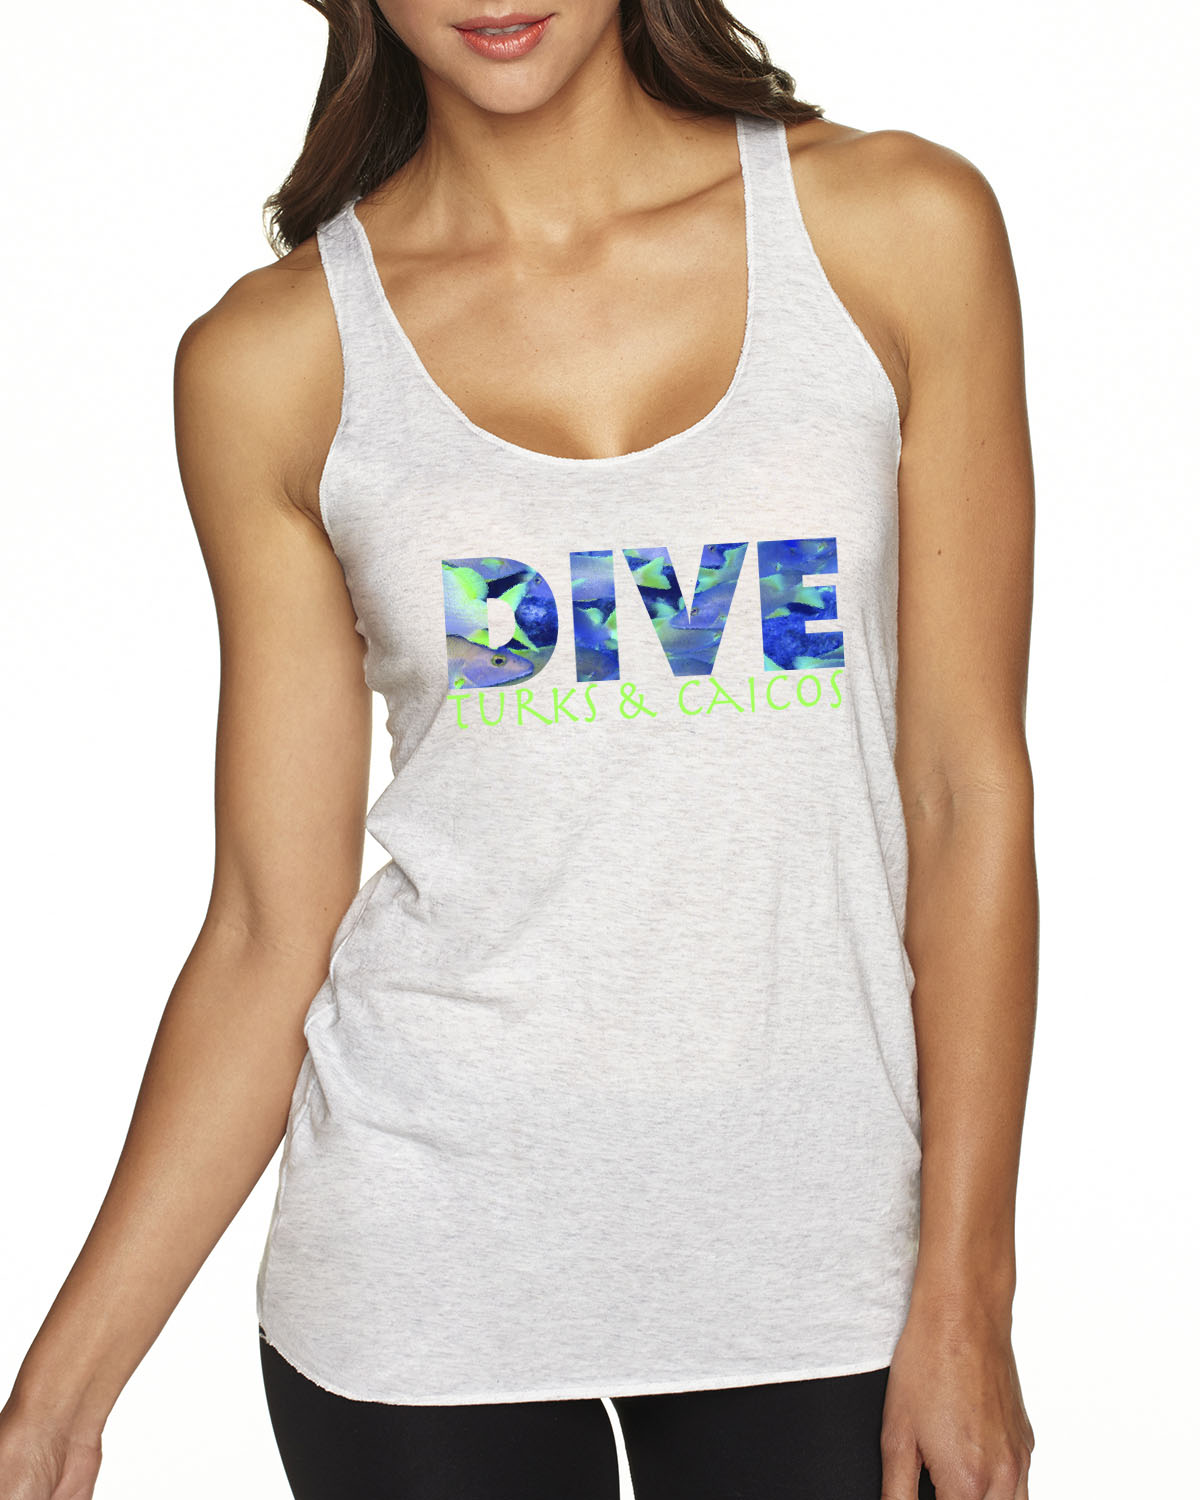 Racer-Back DIVE Turks & Caicos Tank Top (Heather White)